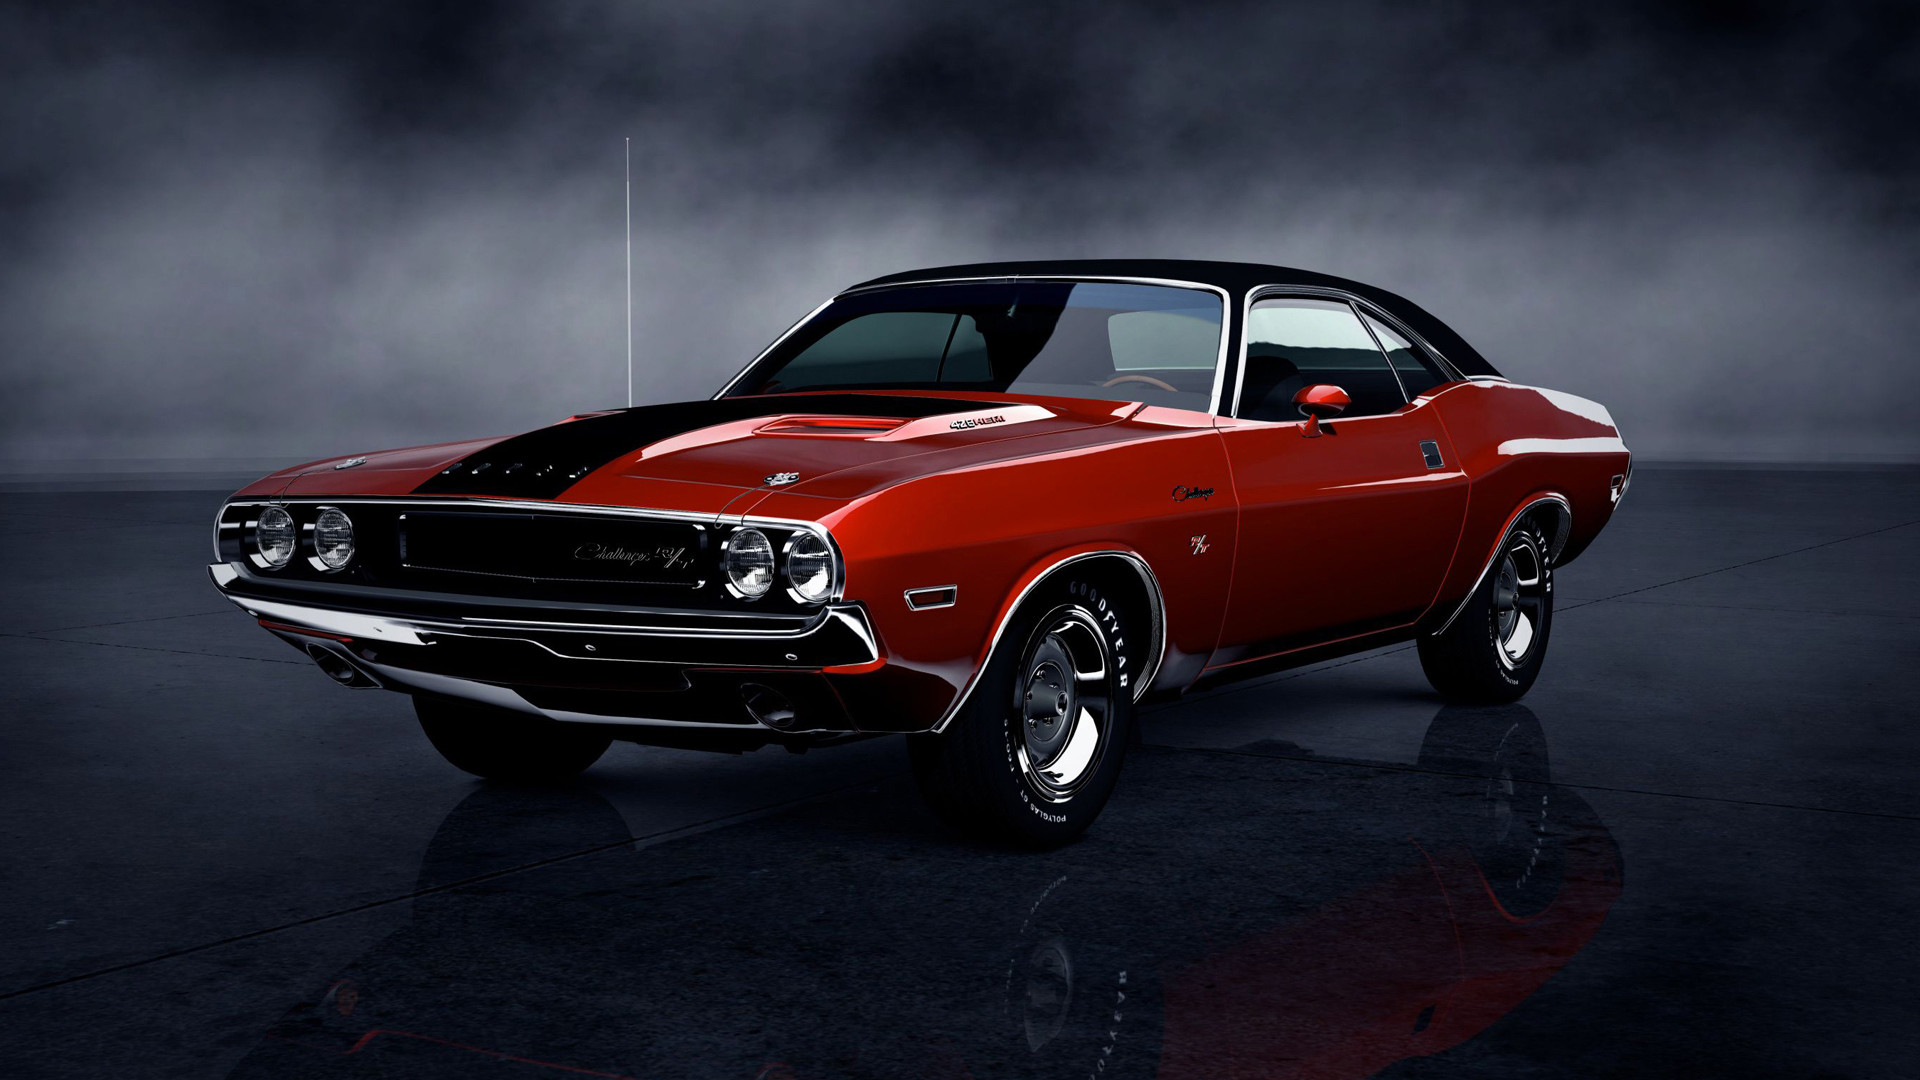 1970 Dodge Charger Wallpaper Hd 76 Images